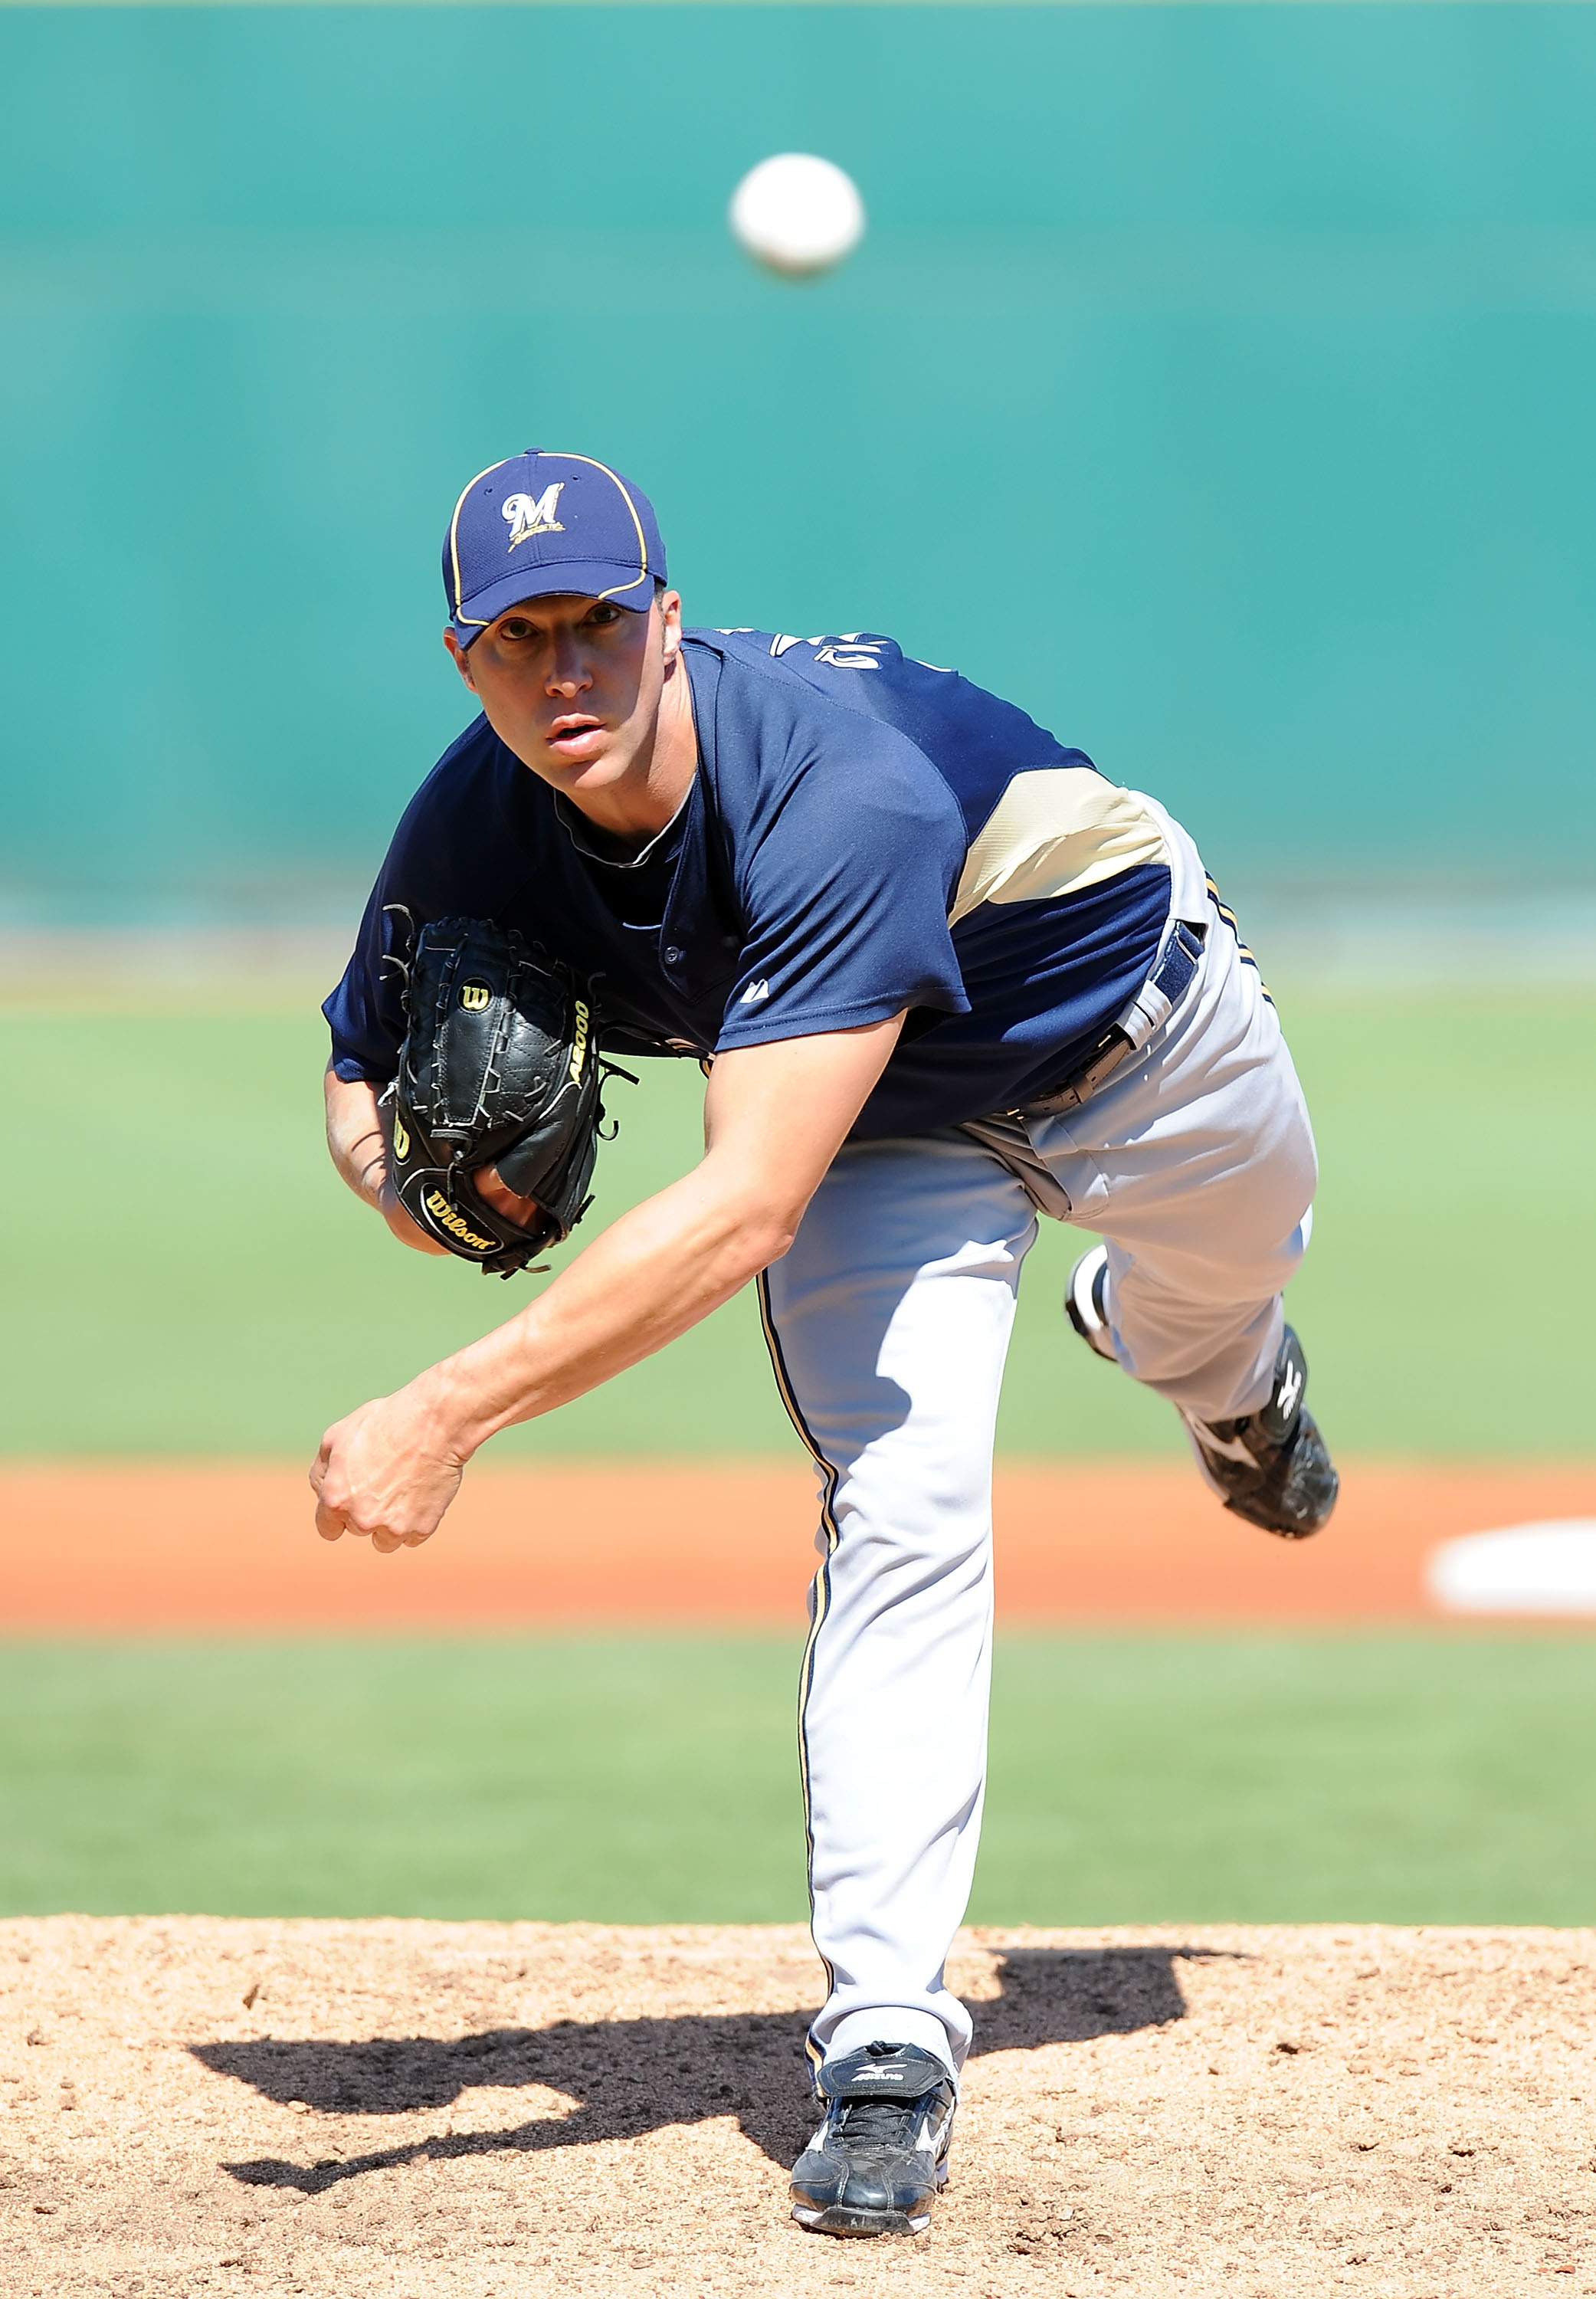 GOODYEAR, AZ - MARCH 11:  Chris Capuano #39 of the Milwaukee Brewers pitches during a Spring Training game against the Cincinnati Reds on March 11, 2010 at Goodyear Ballpark in Goodyear, Arizona.  (Photo by Lisa Blumenfeld/Getty Images)